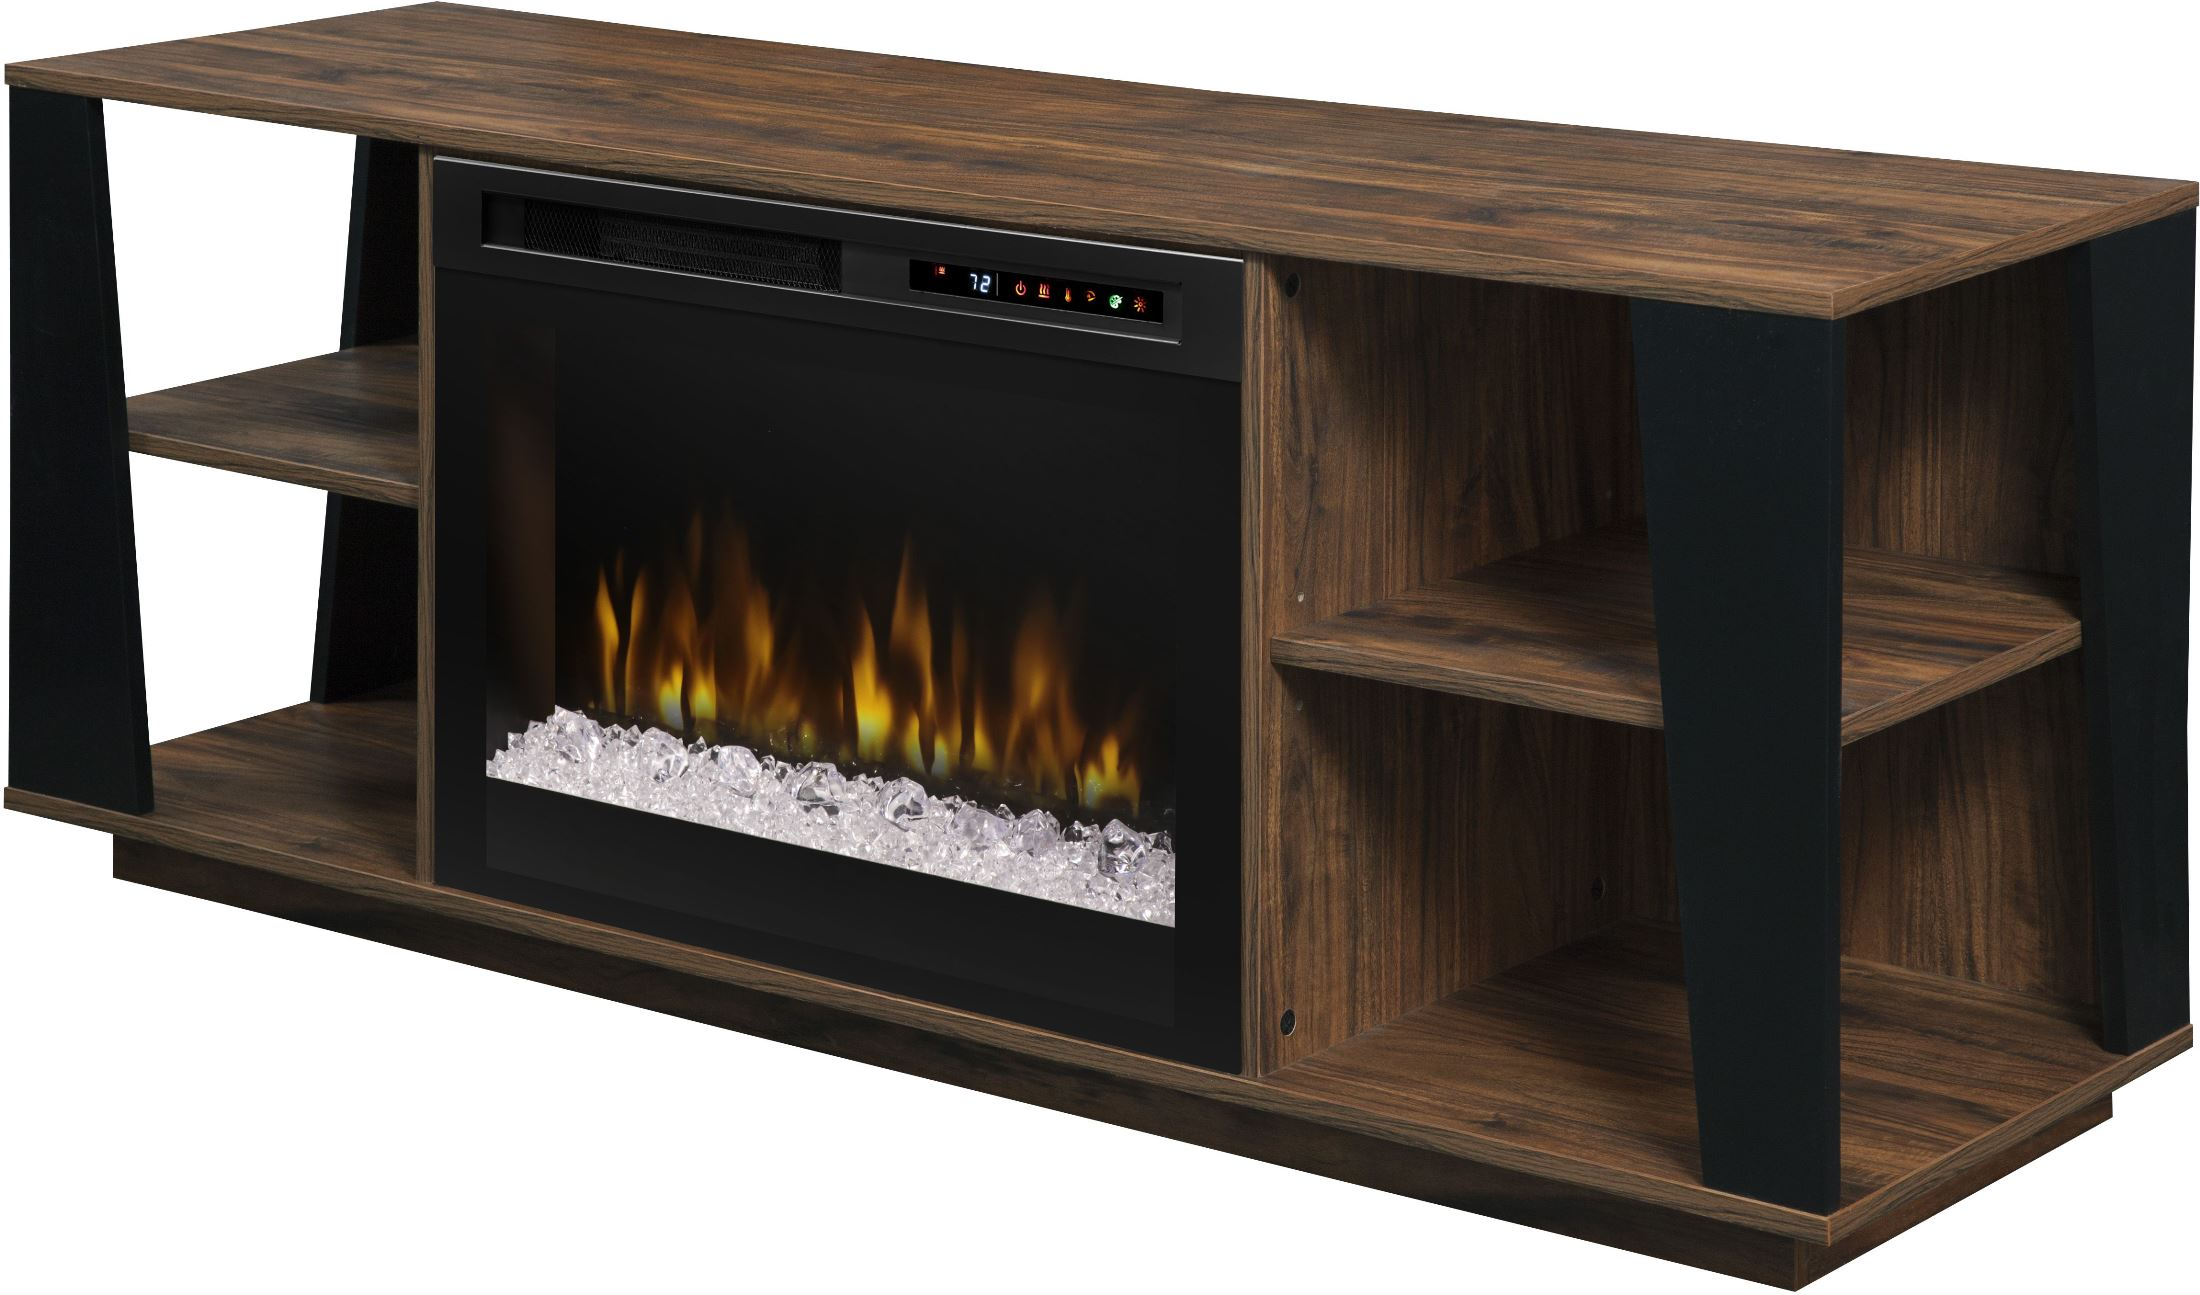 Dimplex arlo walnut media console electric fireplace with - Going to bed with embers in fireplace ...